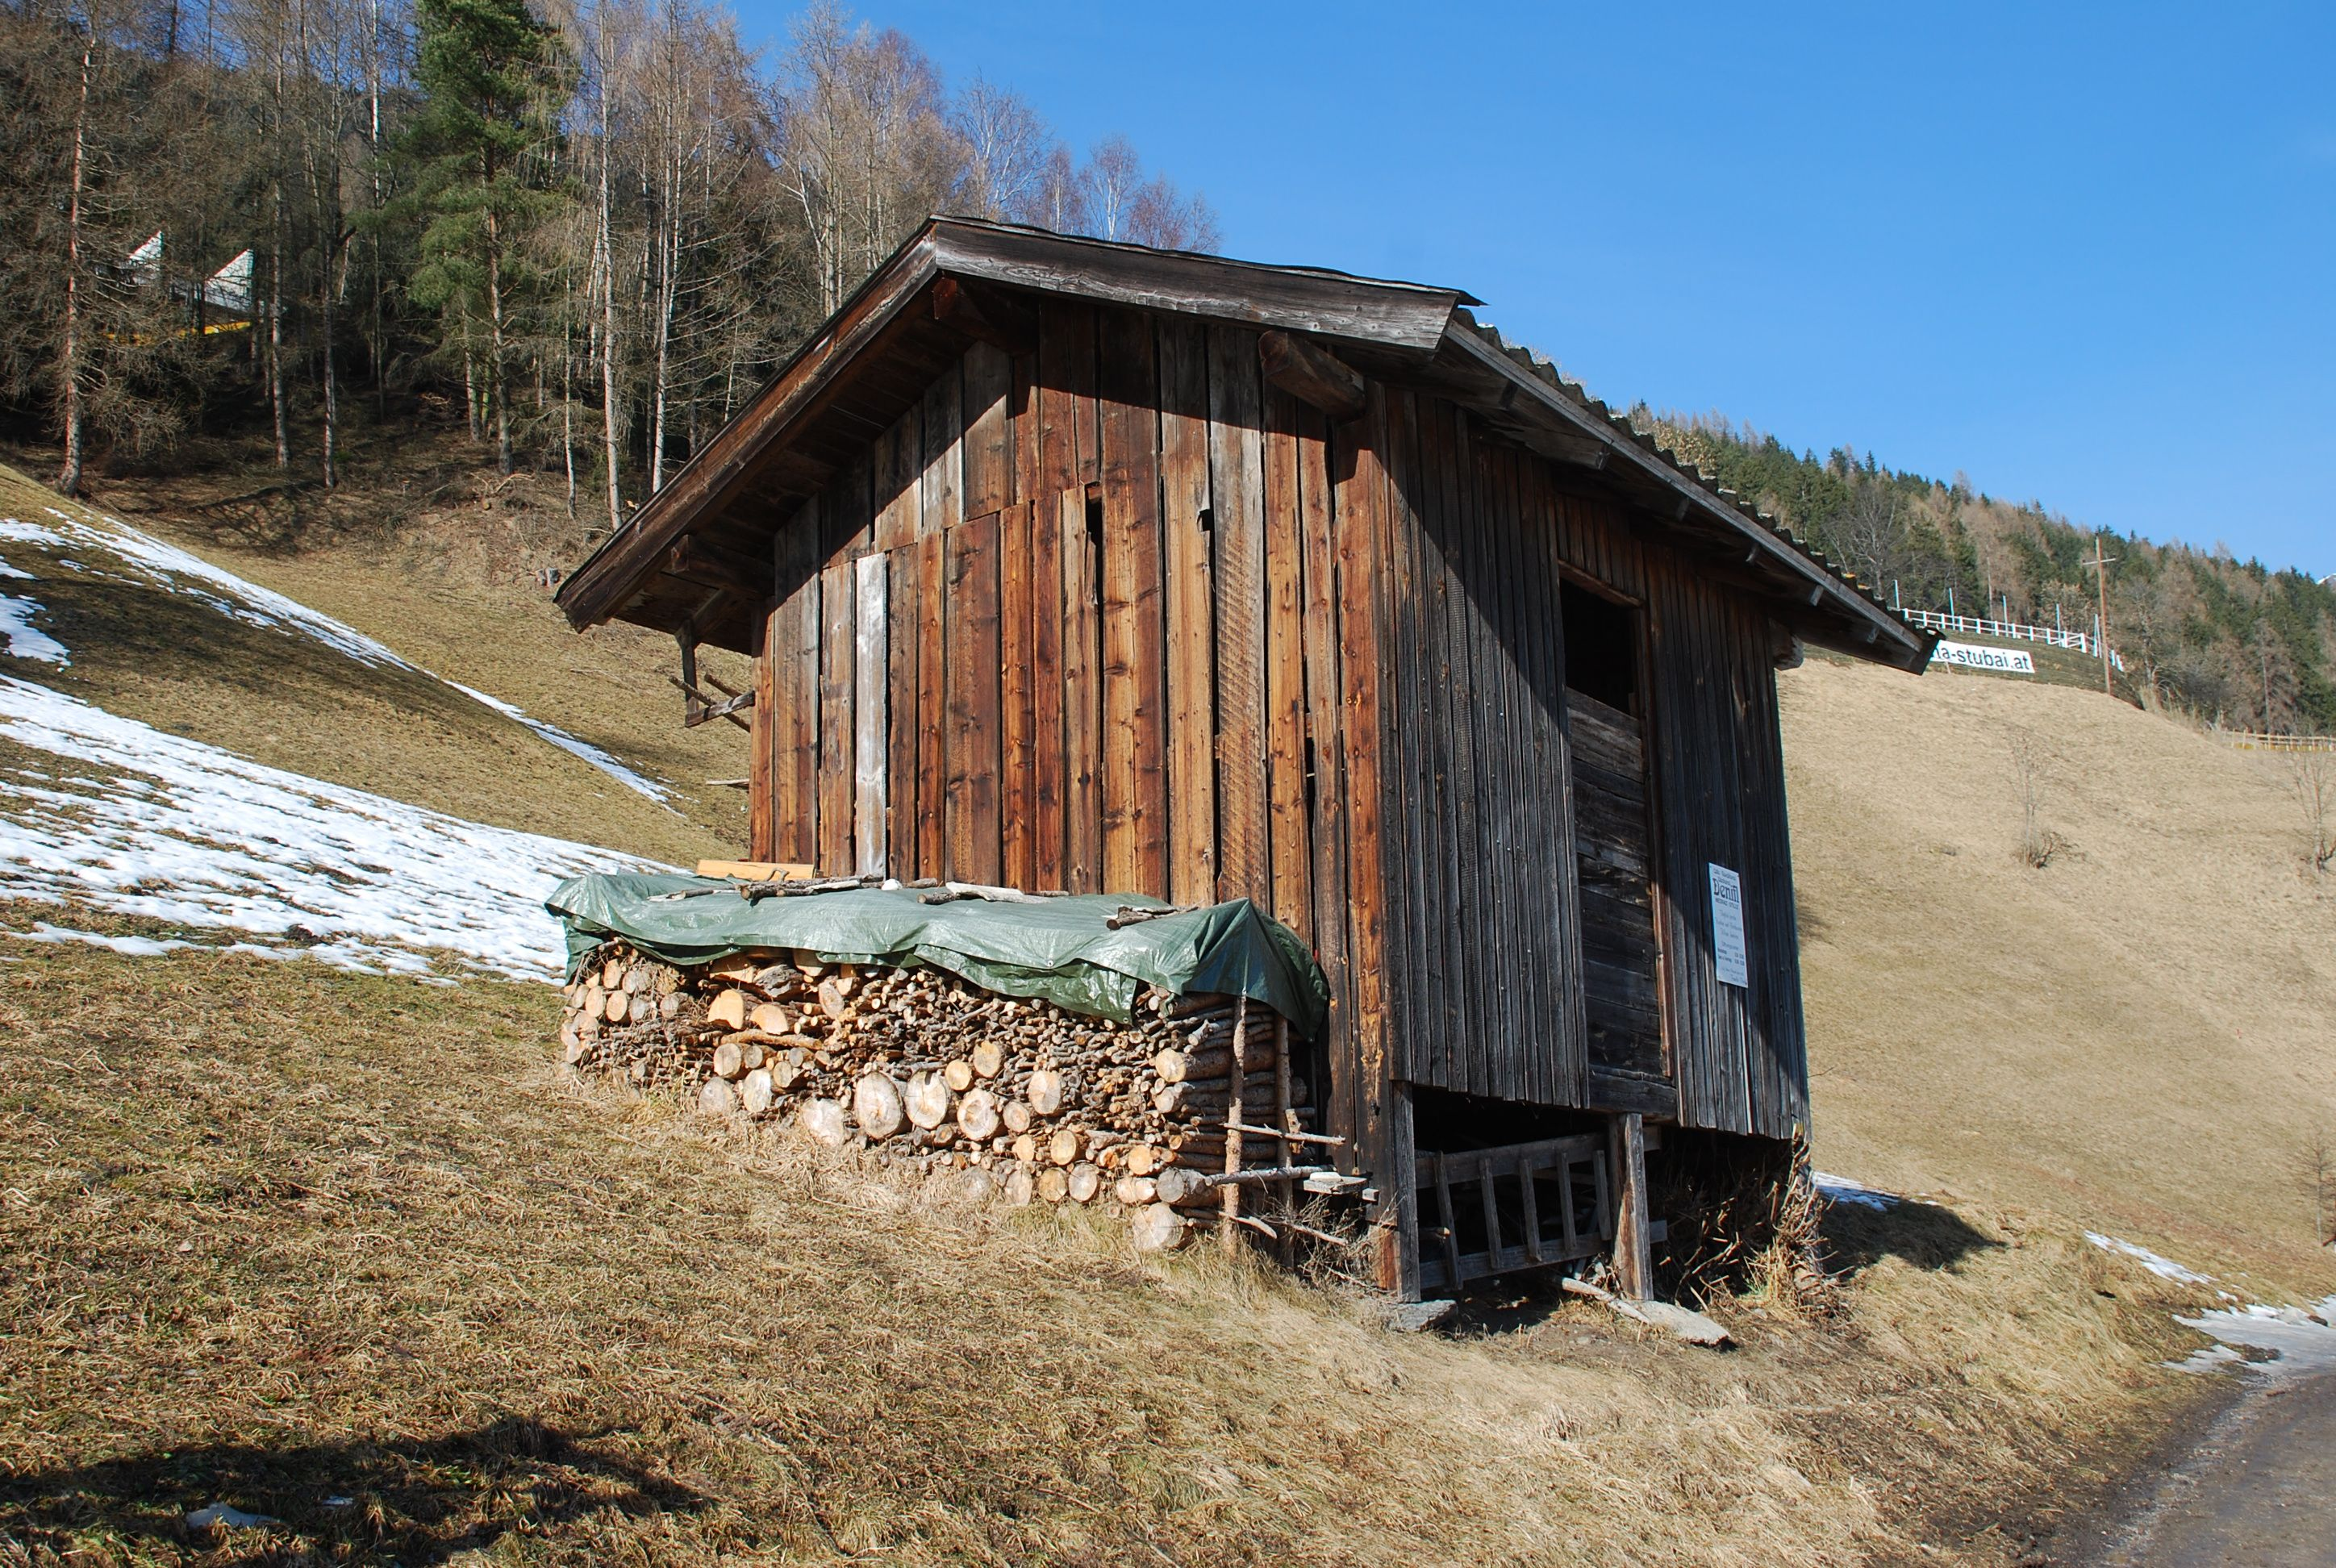 Fulpmes Austria  City new picture : Fulpmes, Austria | Old Barns and Sheds Askew | Pinterest